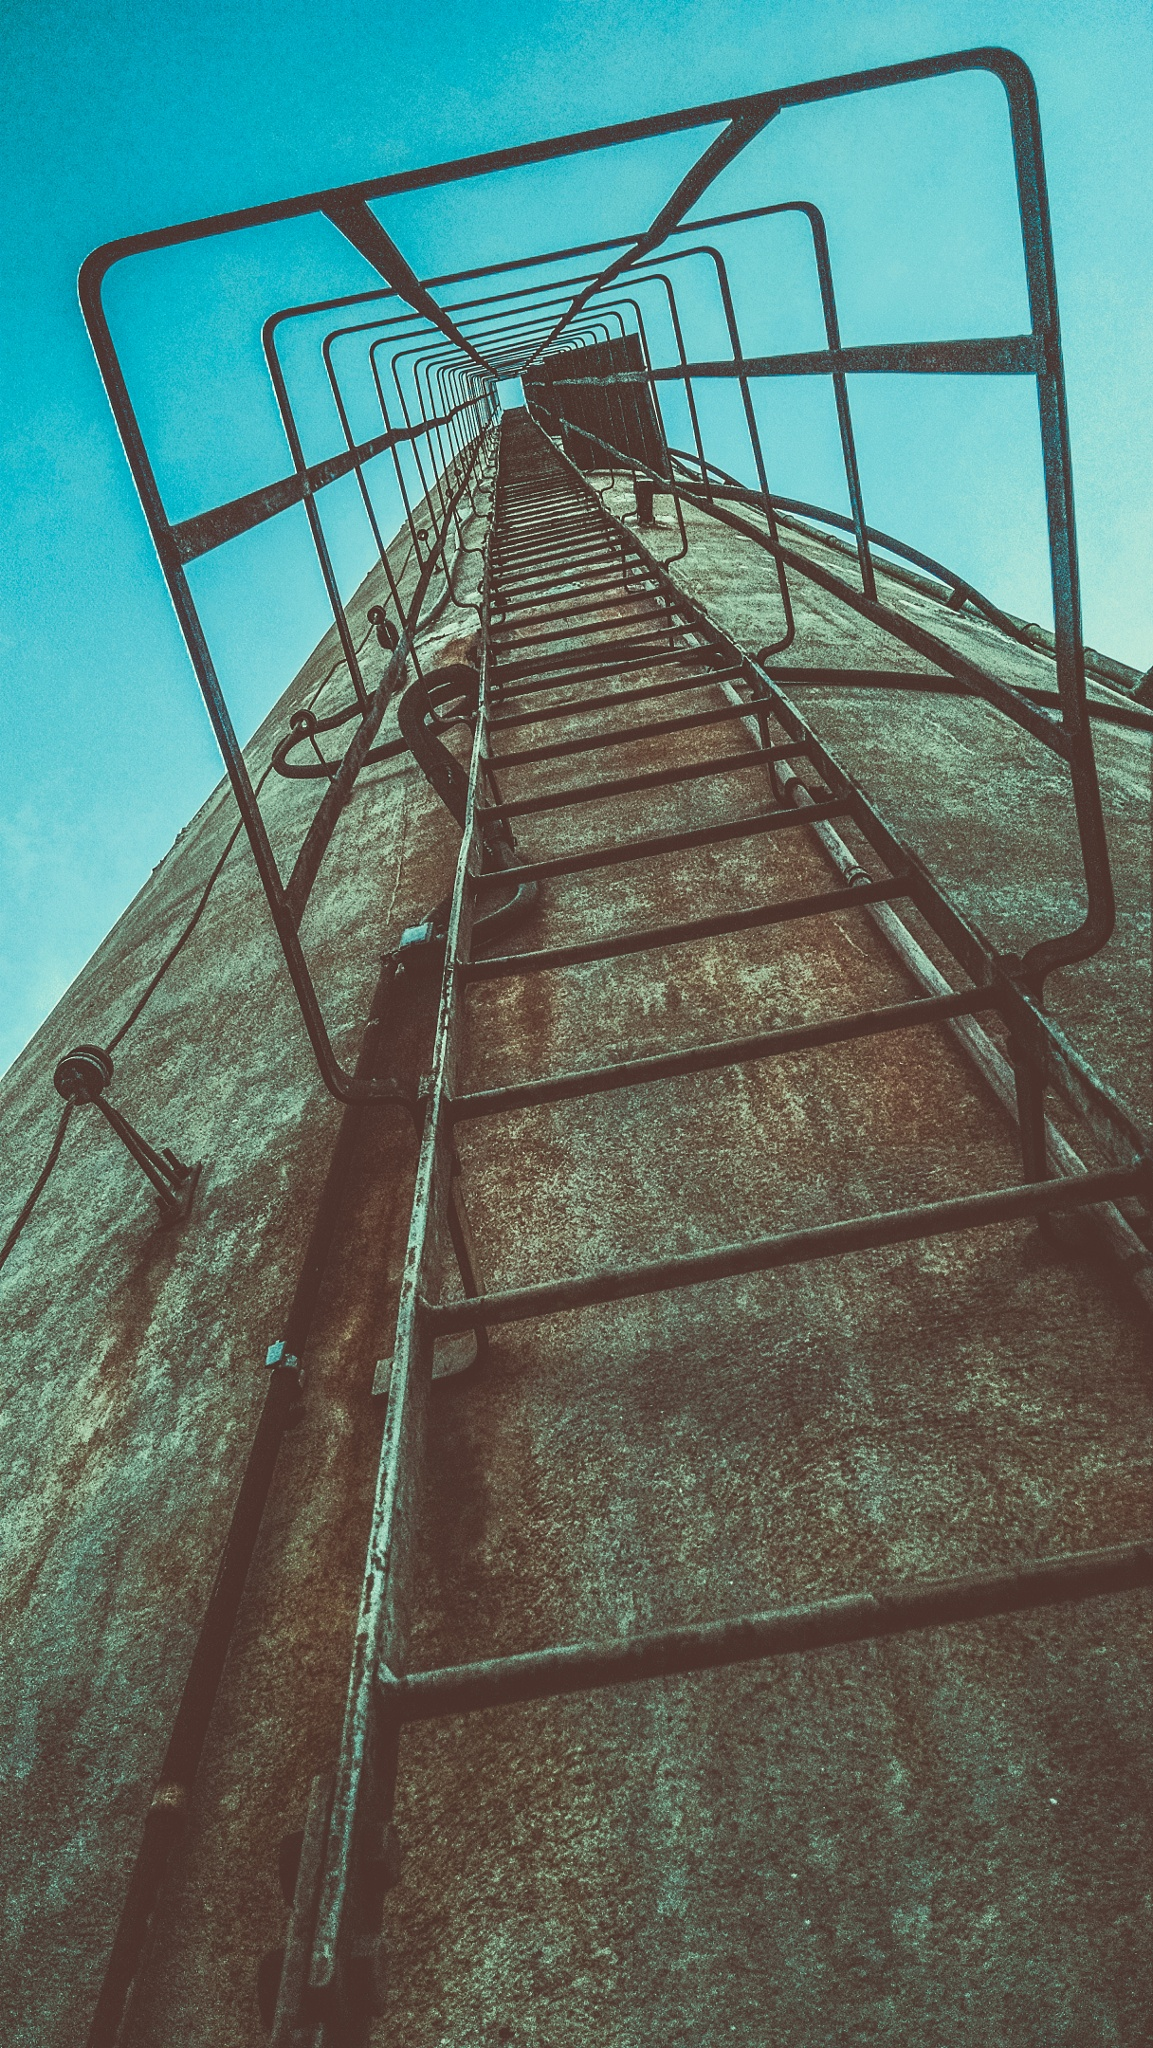 Up! by Anderson Viana